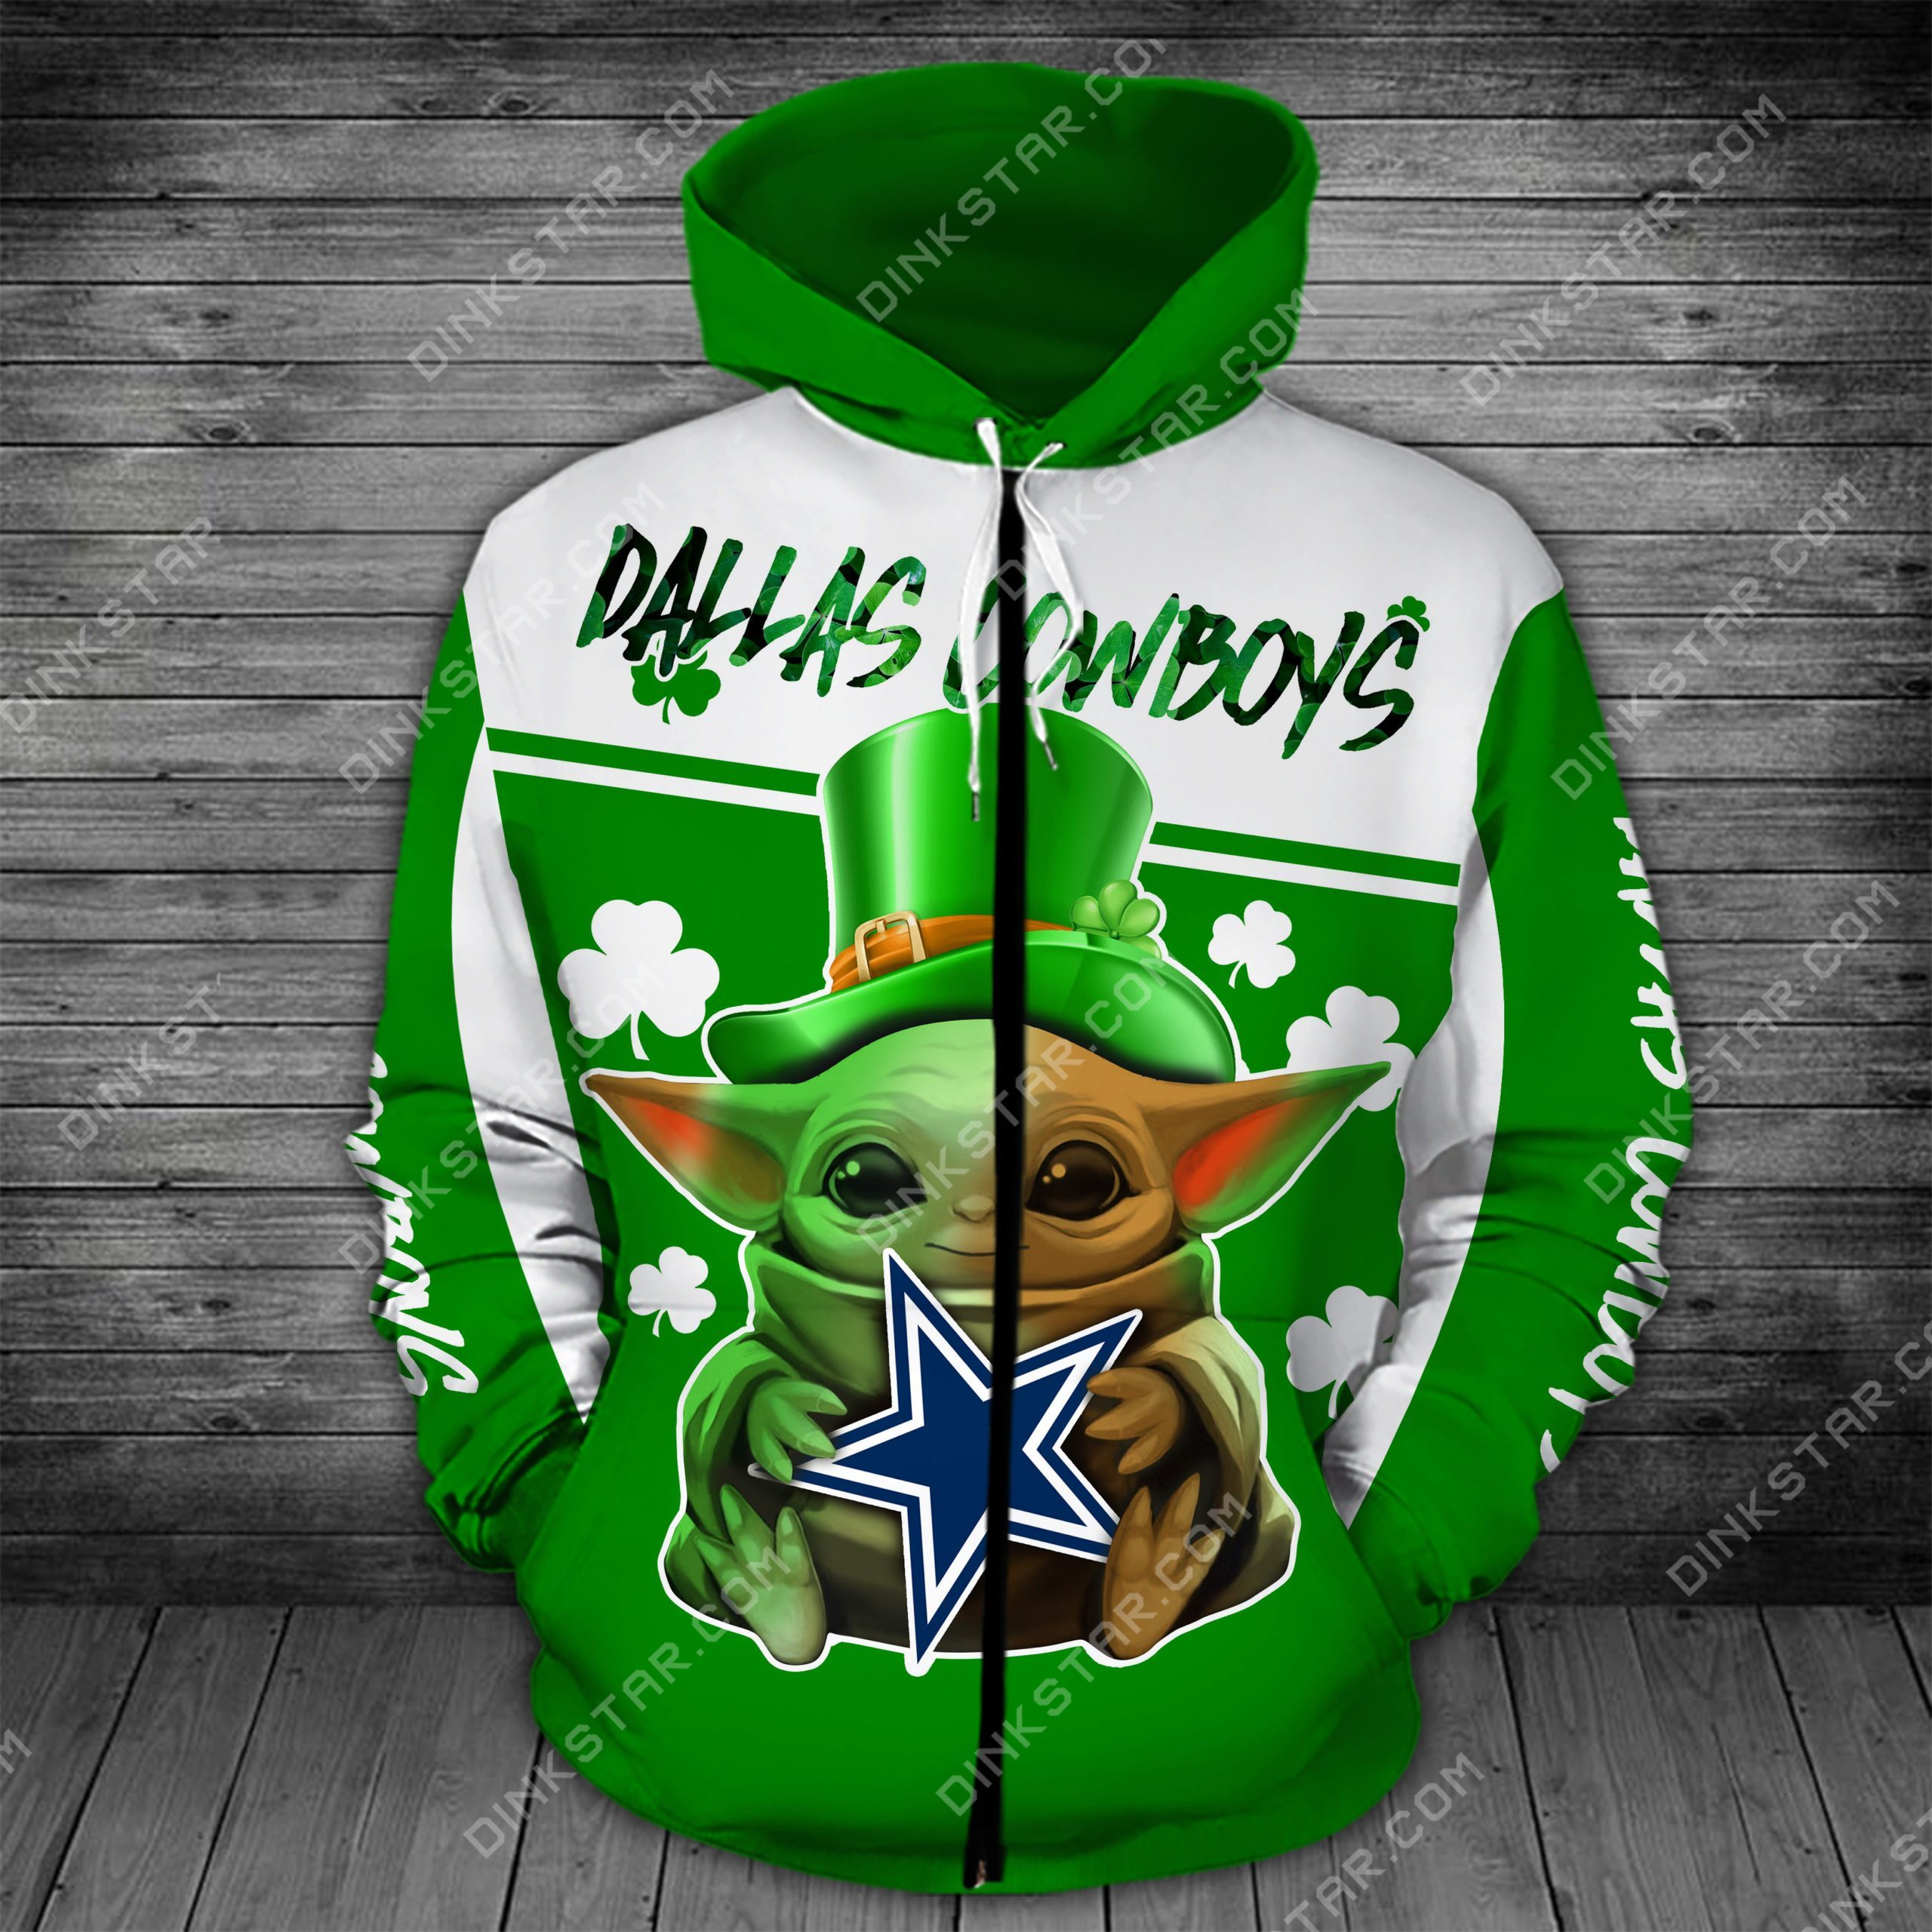 Dallas cowboys baby yoda saint patrick's day full printing zip hoodie